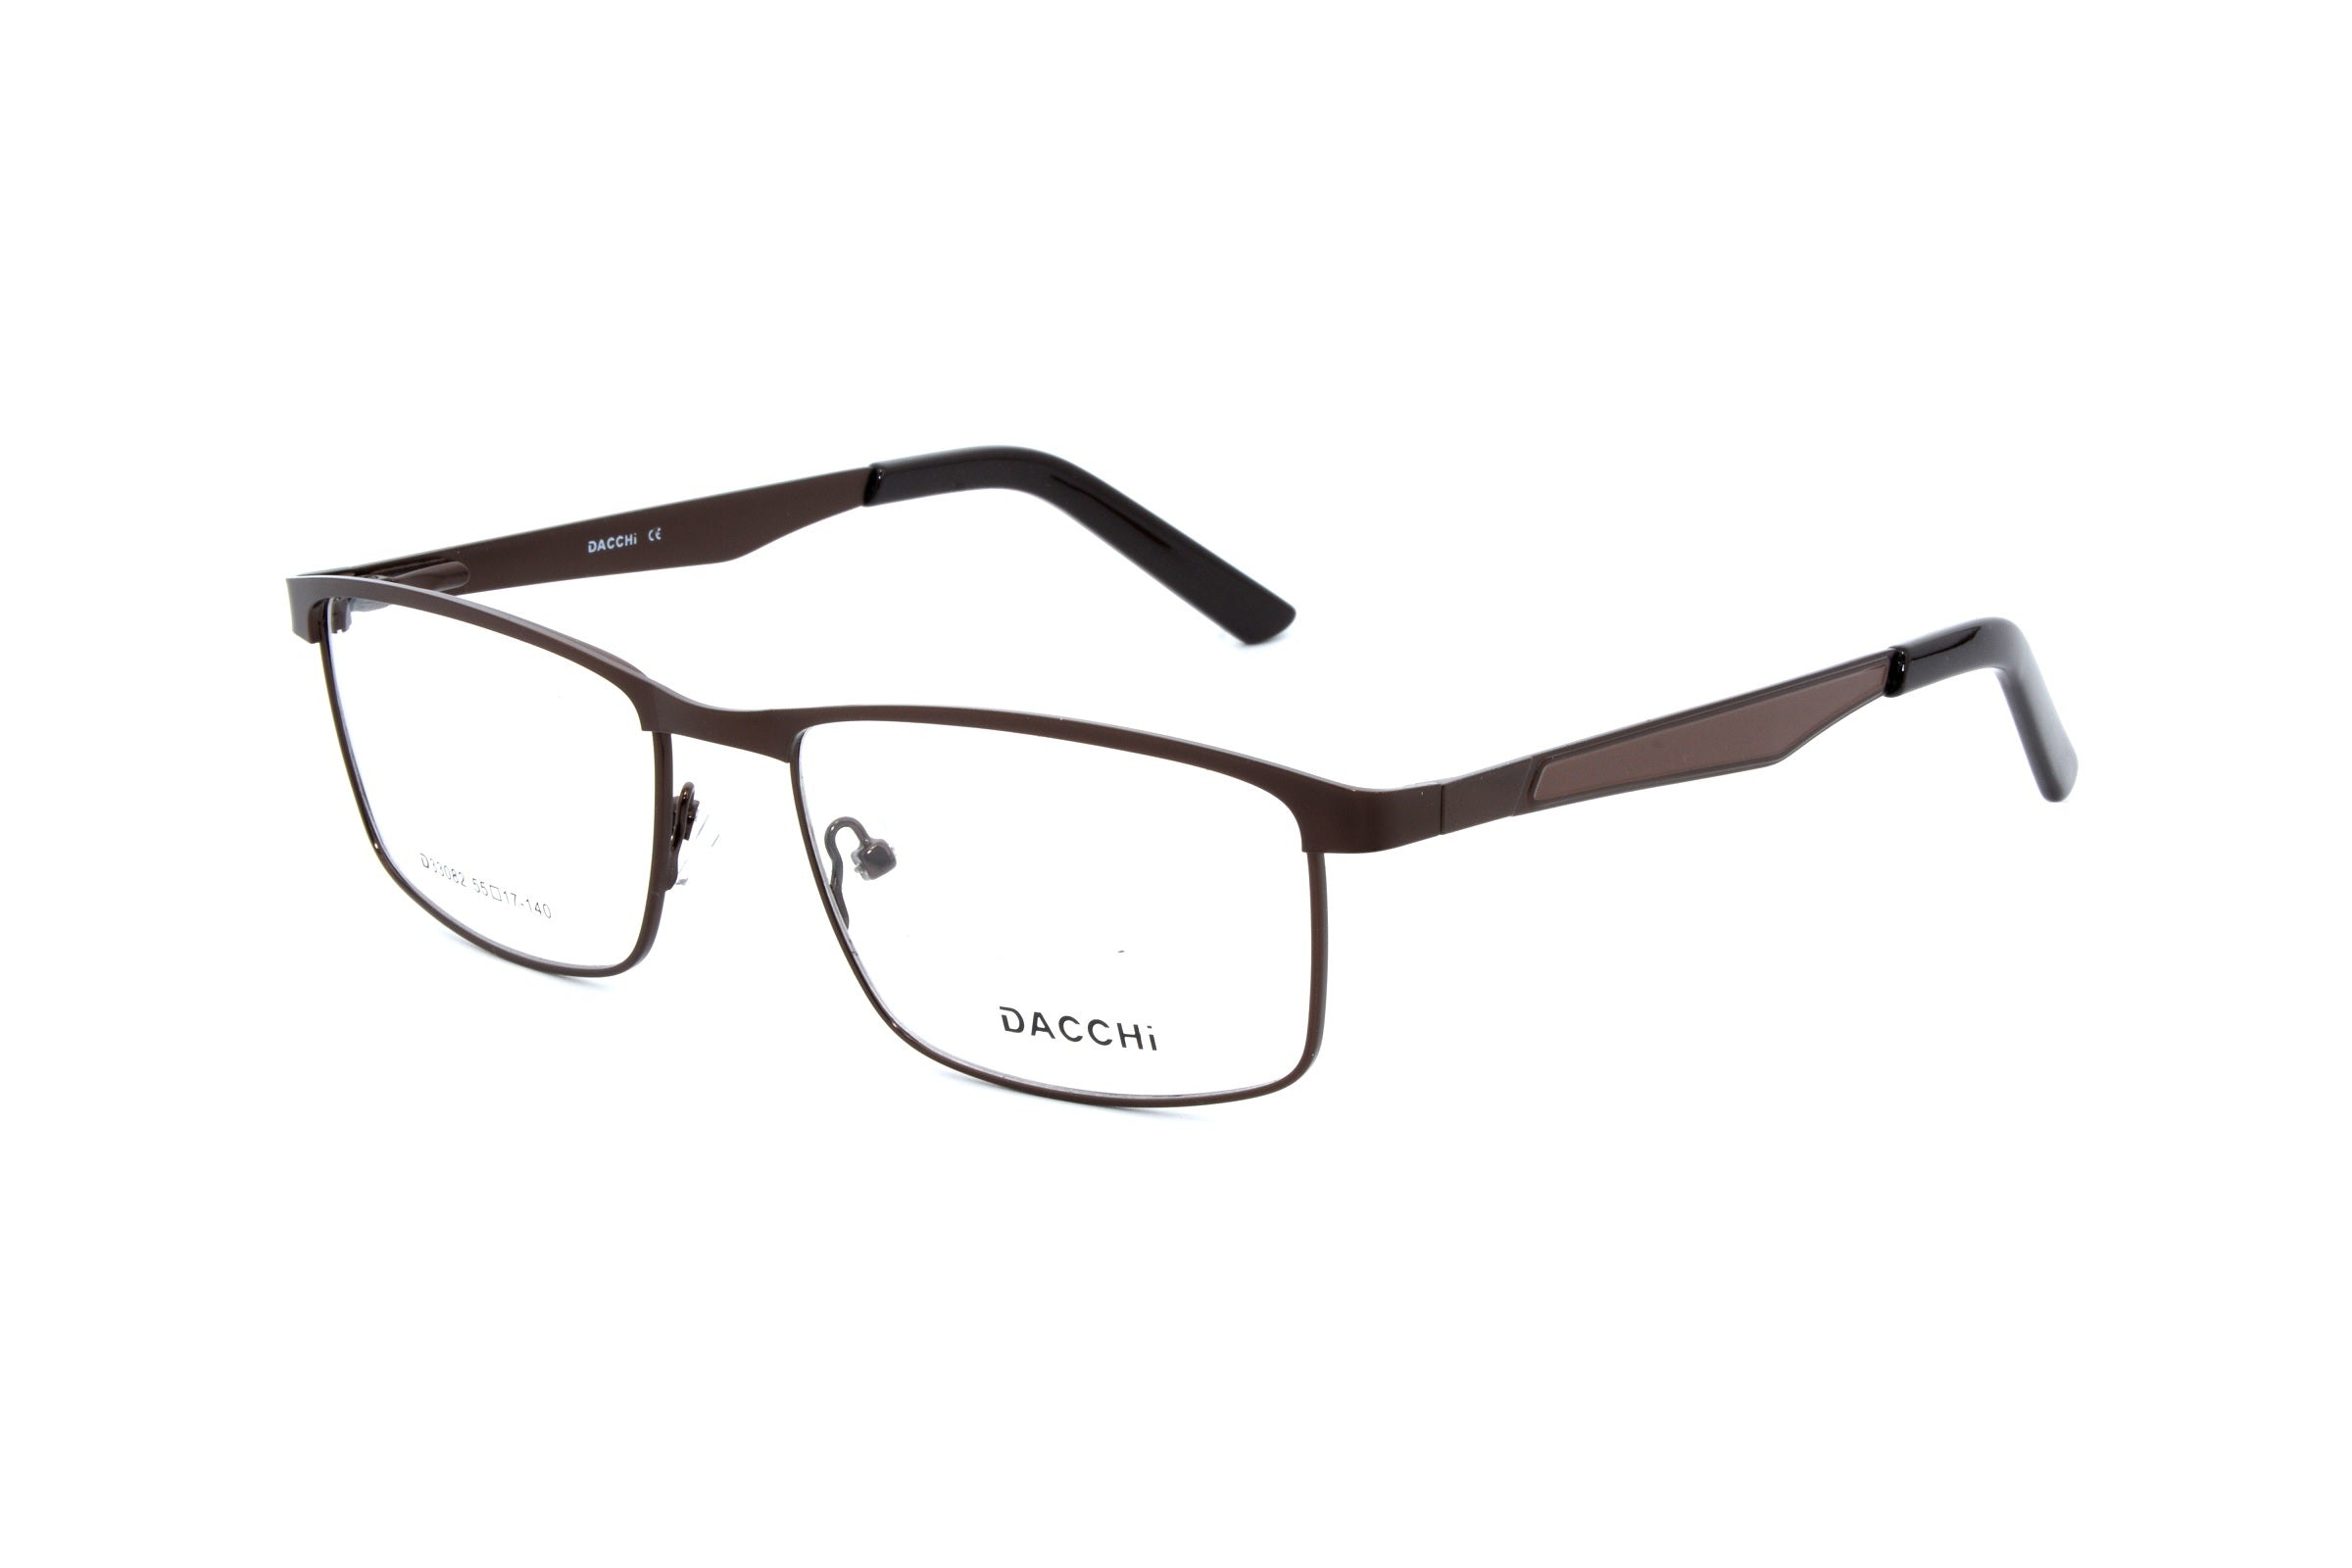 Dacchi eyewear 33082, C4 - Optics Trading